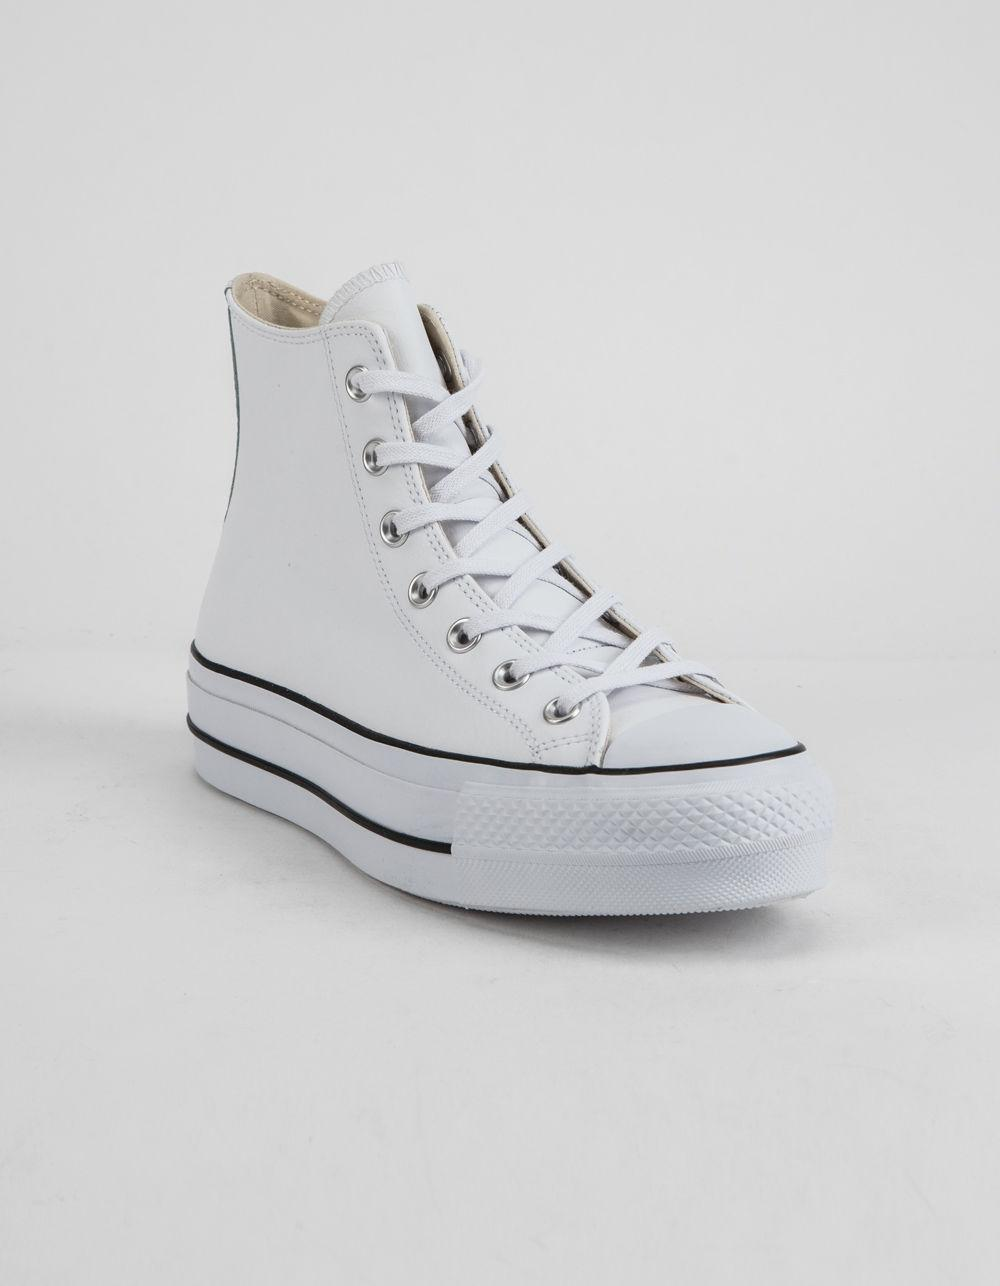 Lyst - Converse Chuck Taylor All Star Lift Faux Leather White Womens ... b202bfbc8